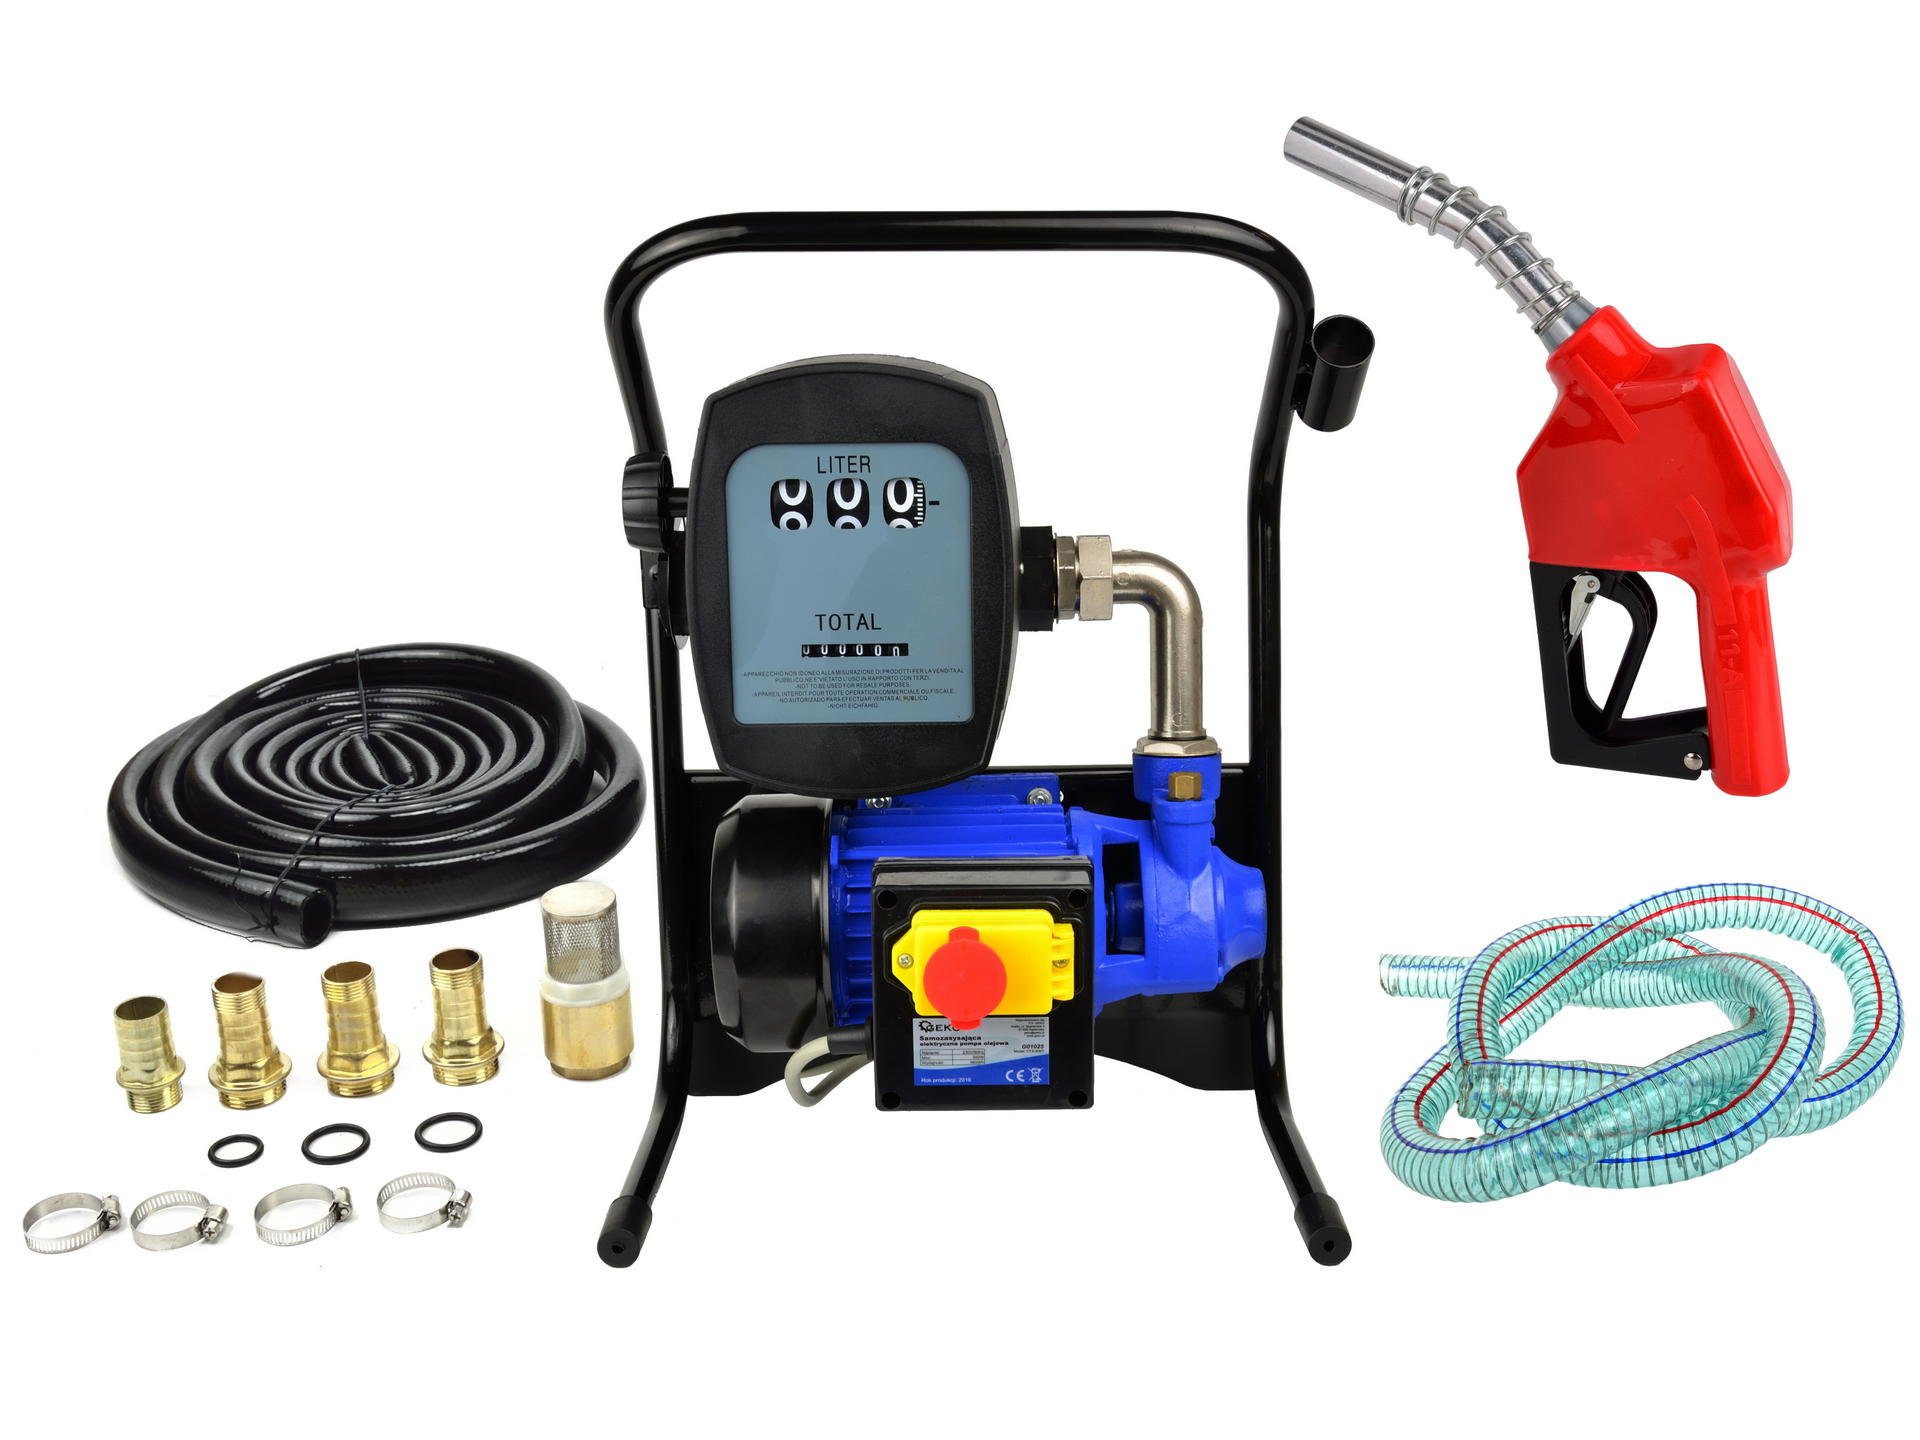 Fuel pump+gun‎+measuring unit 230V 600W 40/min